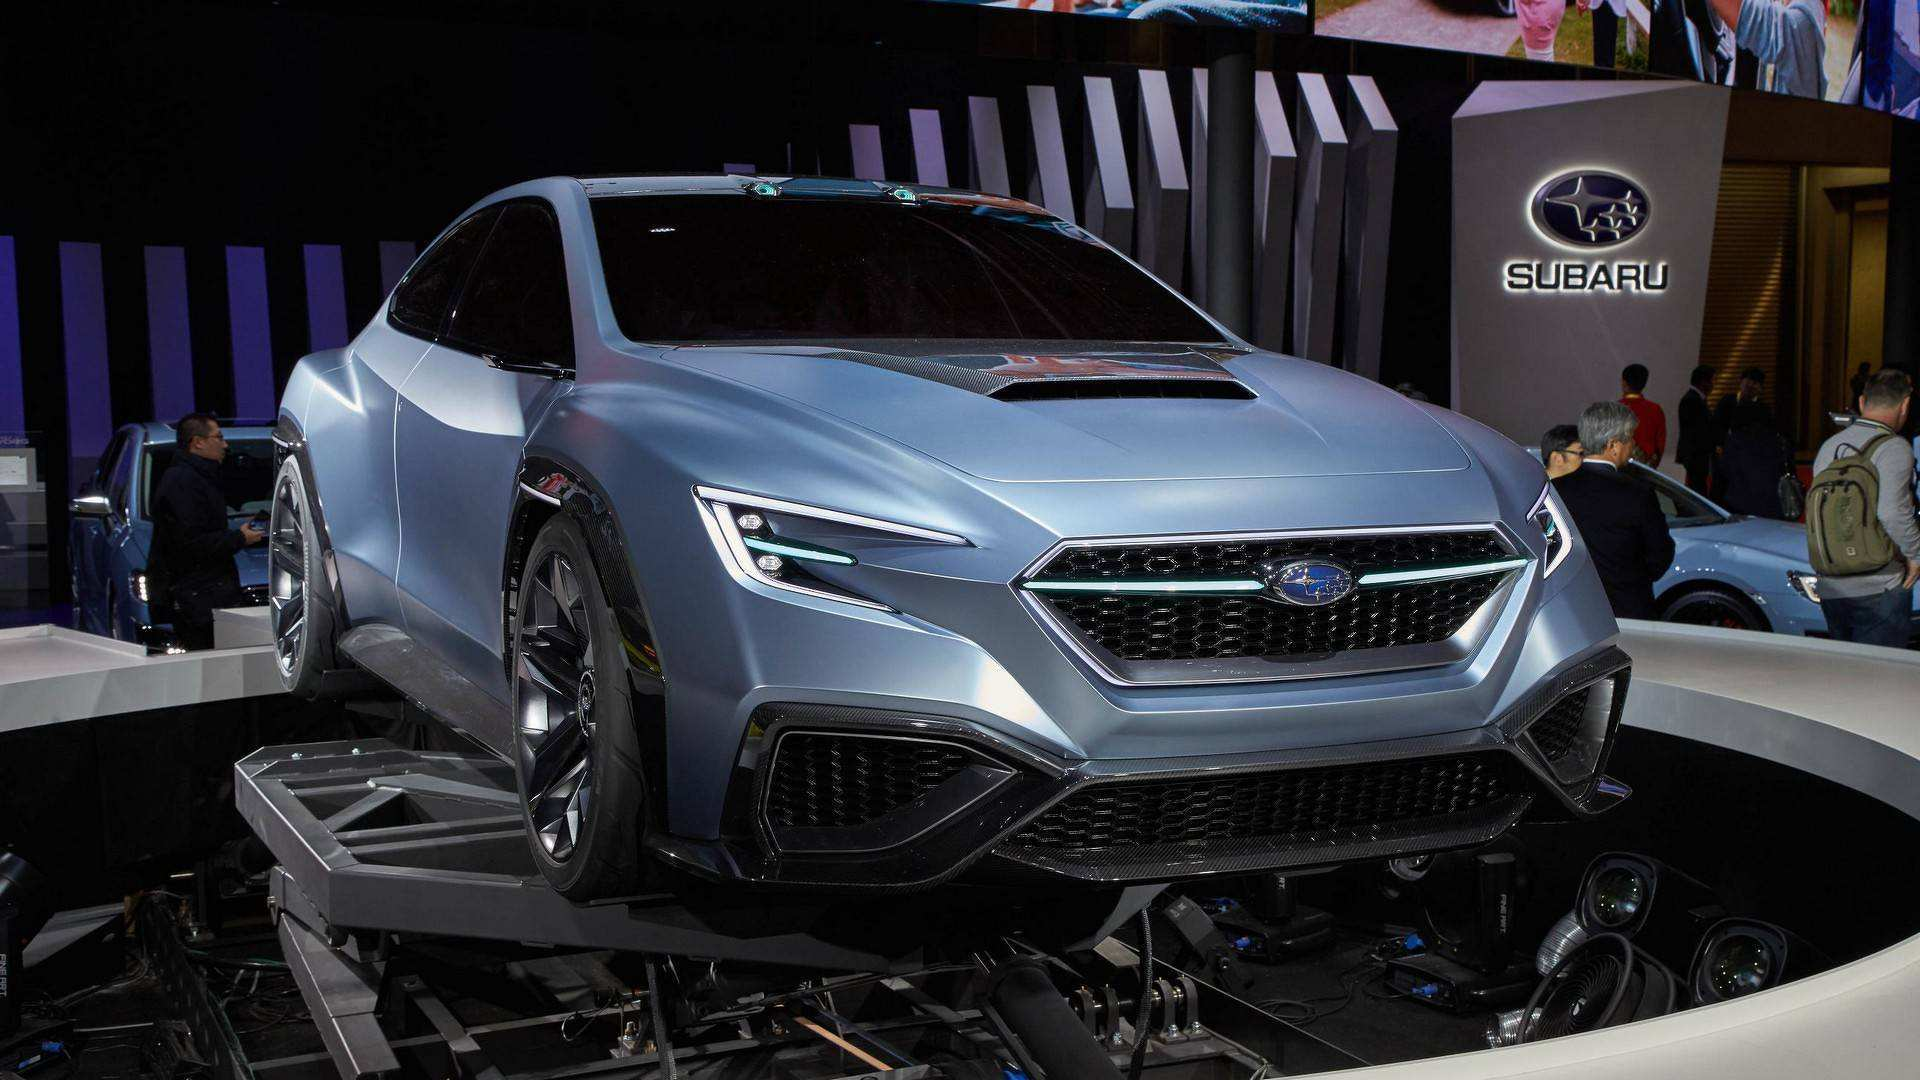 16 Concept of 2020 Subaru Sti Rumors Picture with 2020 Subaru Sti Rumors